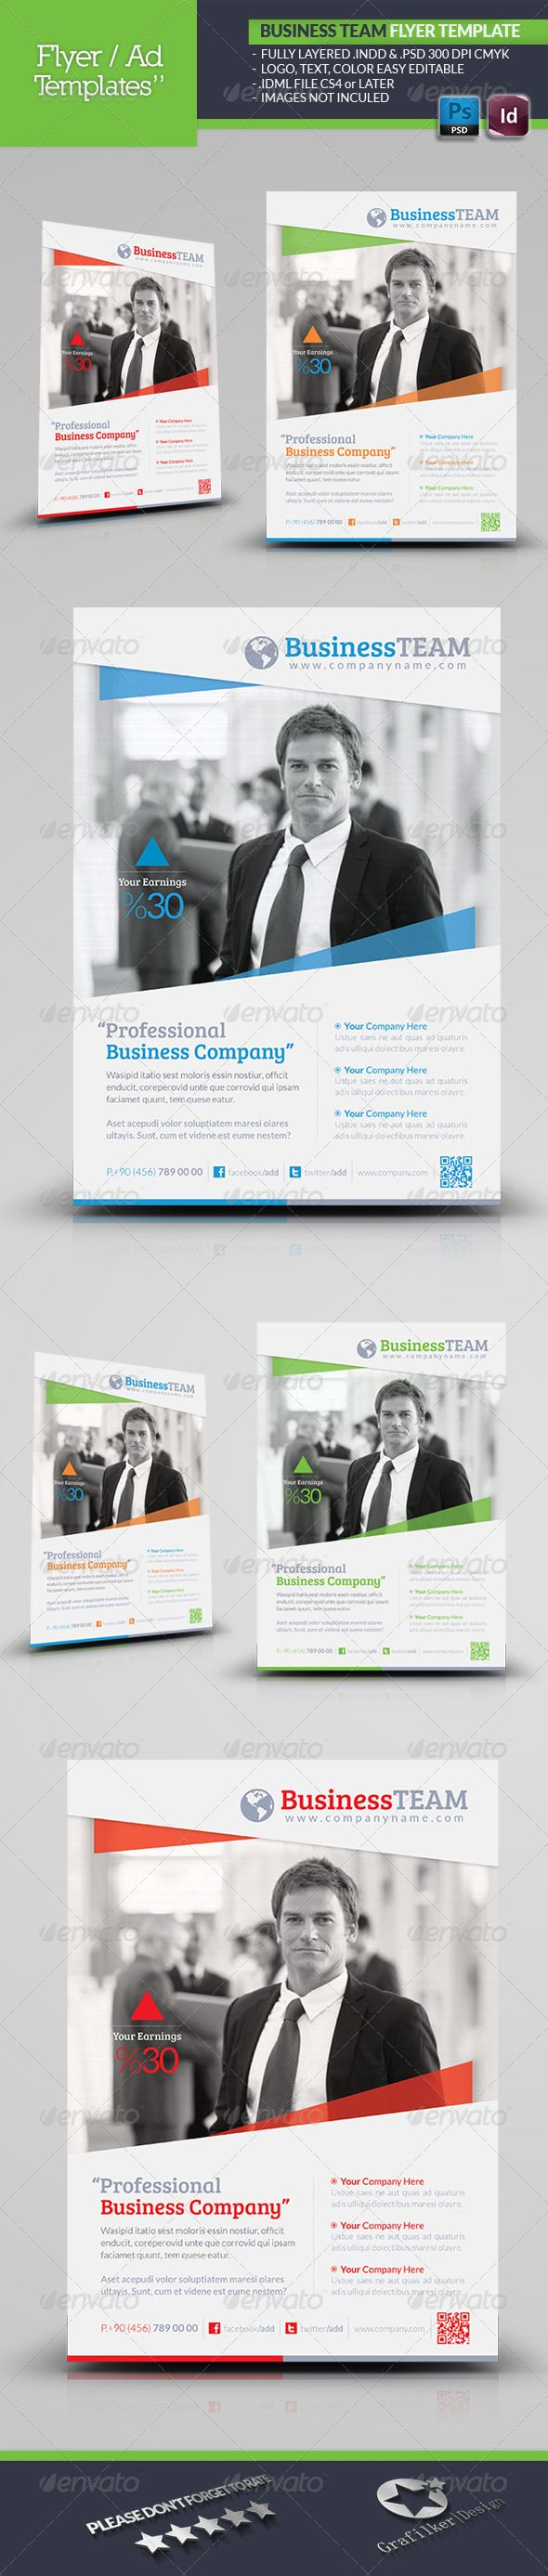 best images about graphic design marketing buy business team flyer template by grafilker on graphicriver business team flyer template fully layered indd fully layered psd 300 dpi cmyk idml format